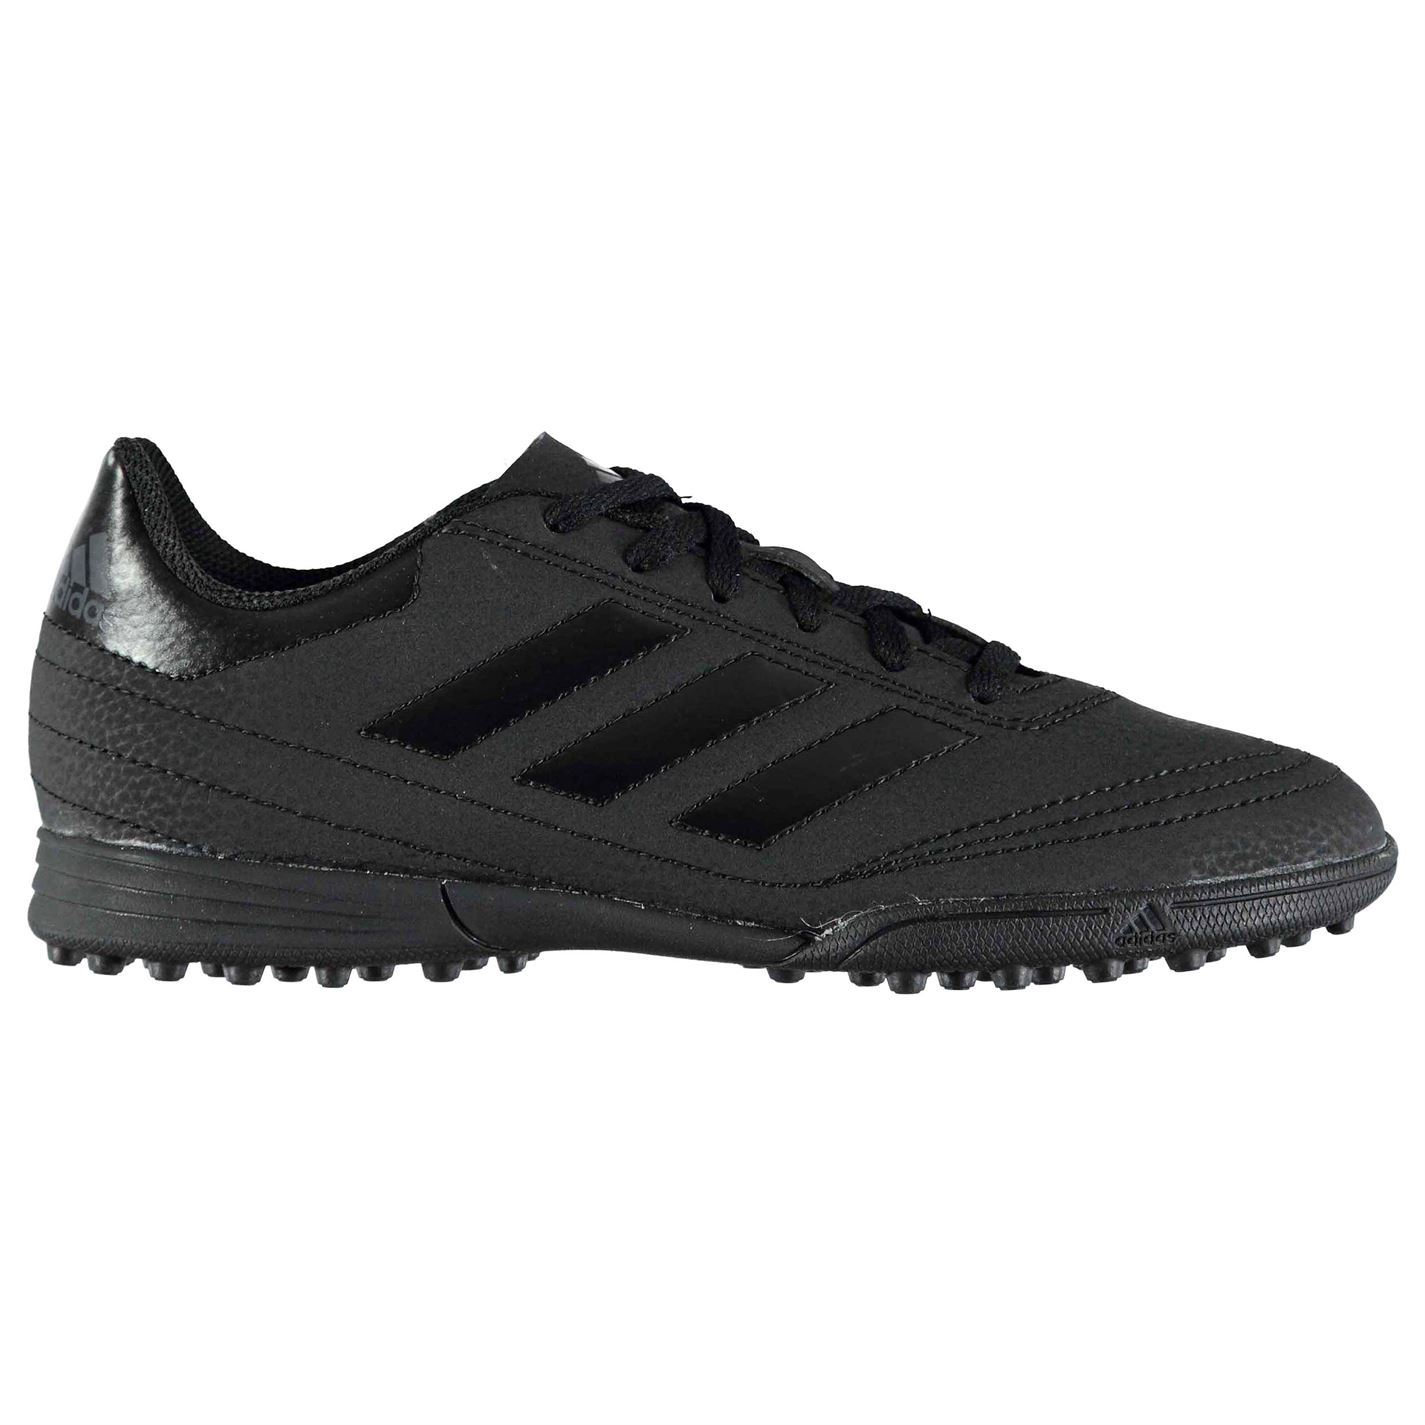 Adidas-Goletto-Astro-Turf-Football-Baskets-Juniors-Football-Baskets-Chaussures miniature 4